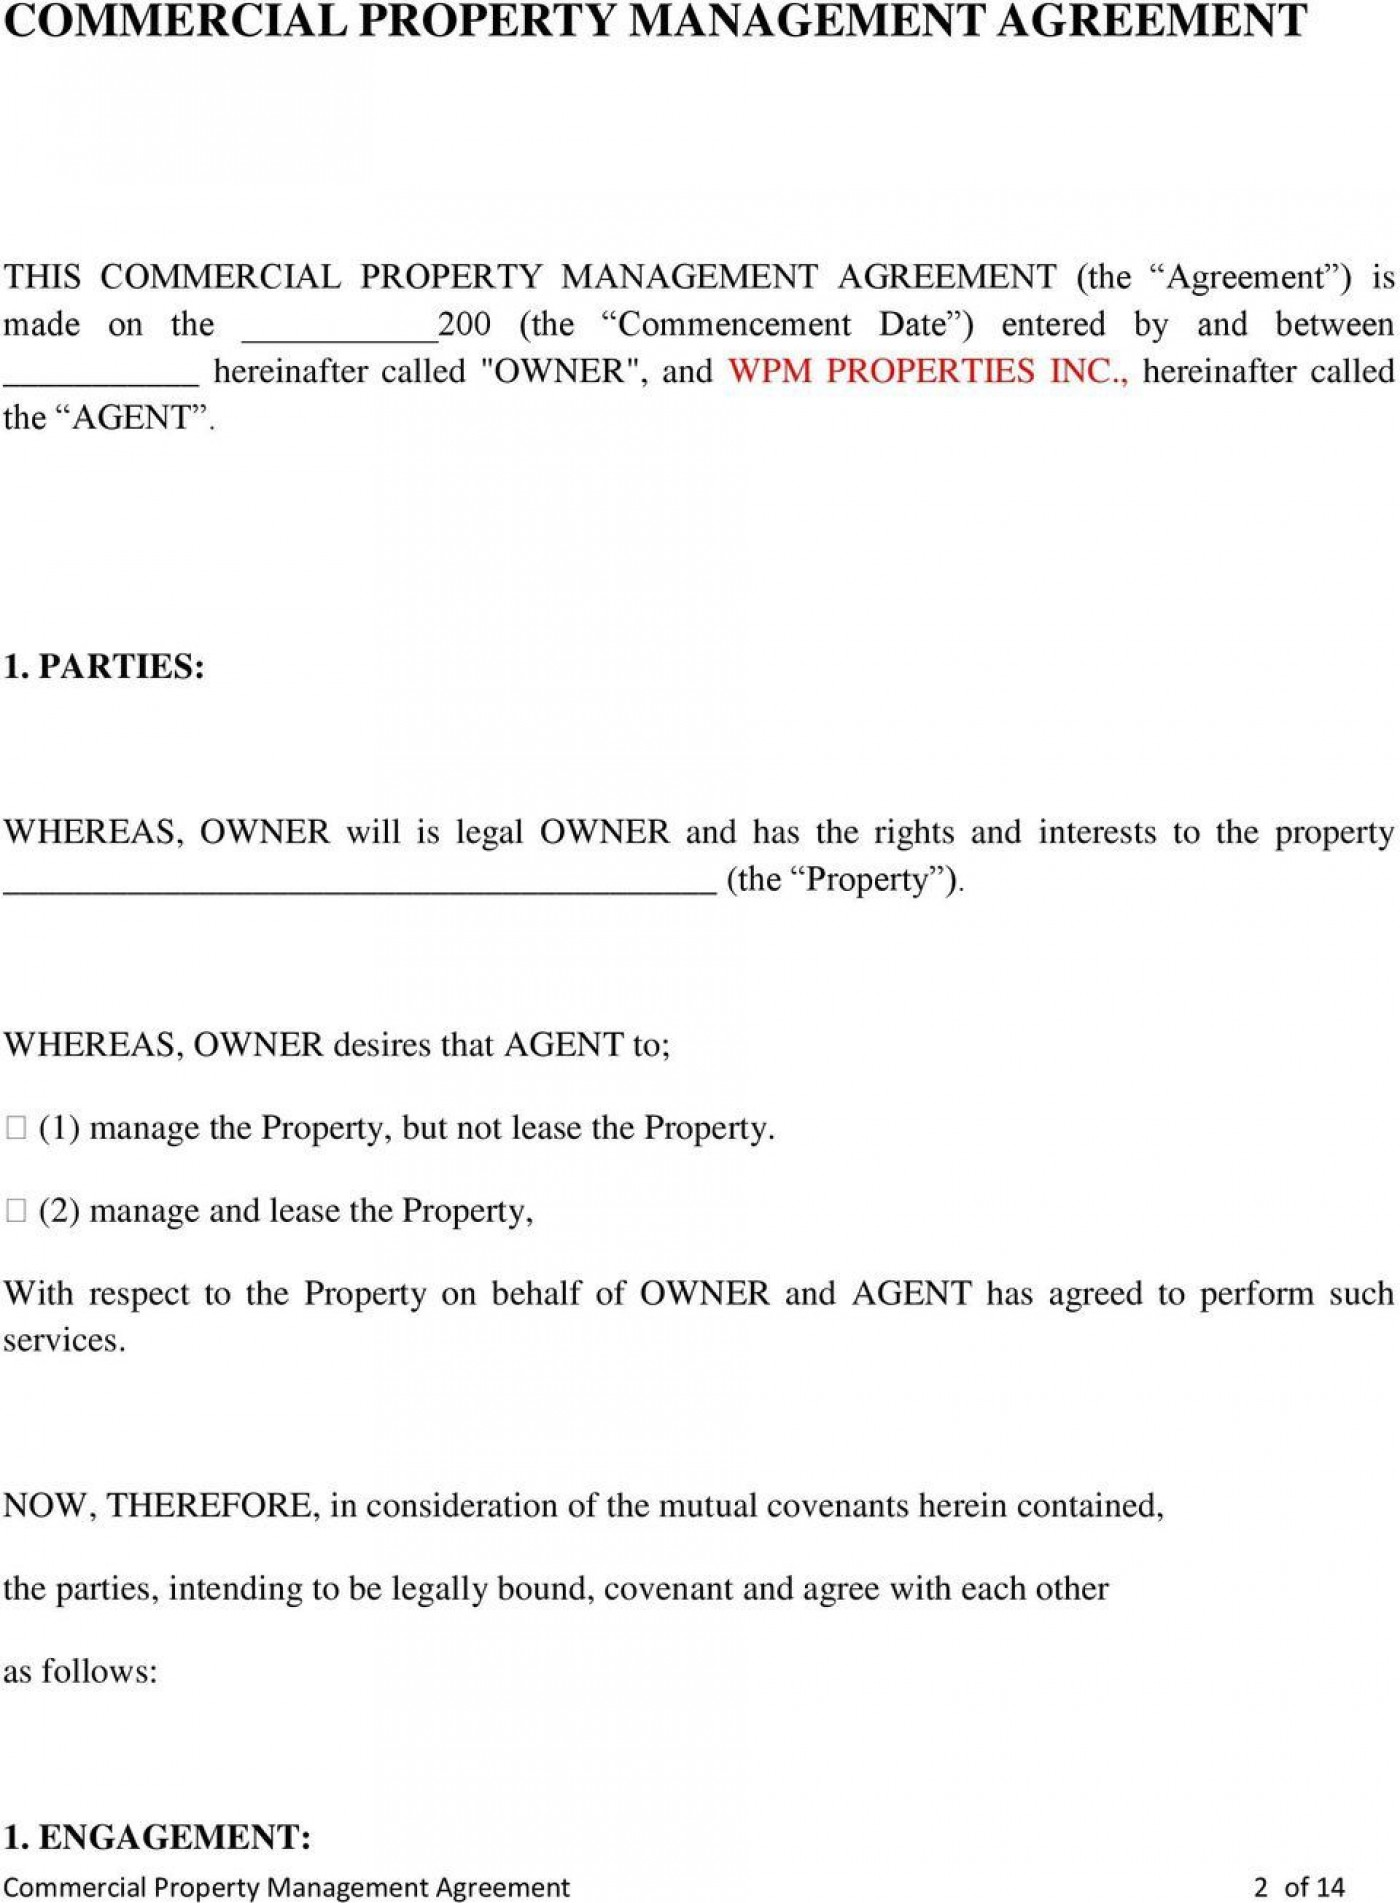 003 Impressive Property Management Contract Sample Highest Quality  Agreement Template Pdf Company Free Uk1400